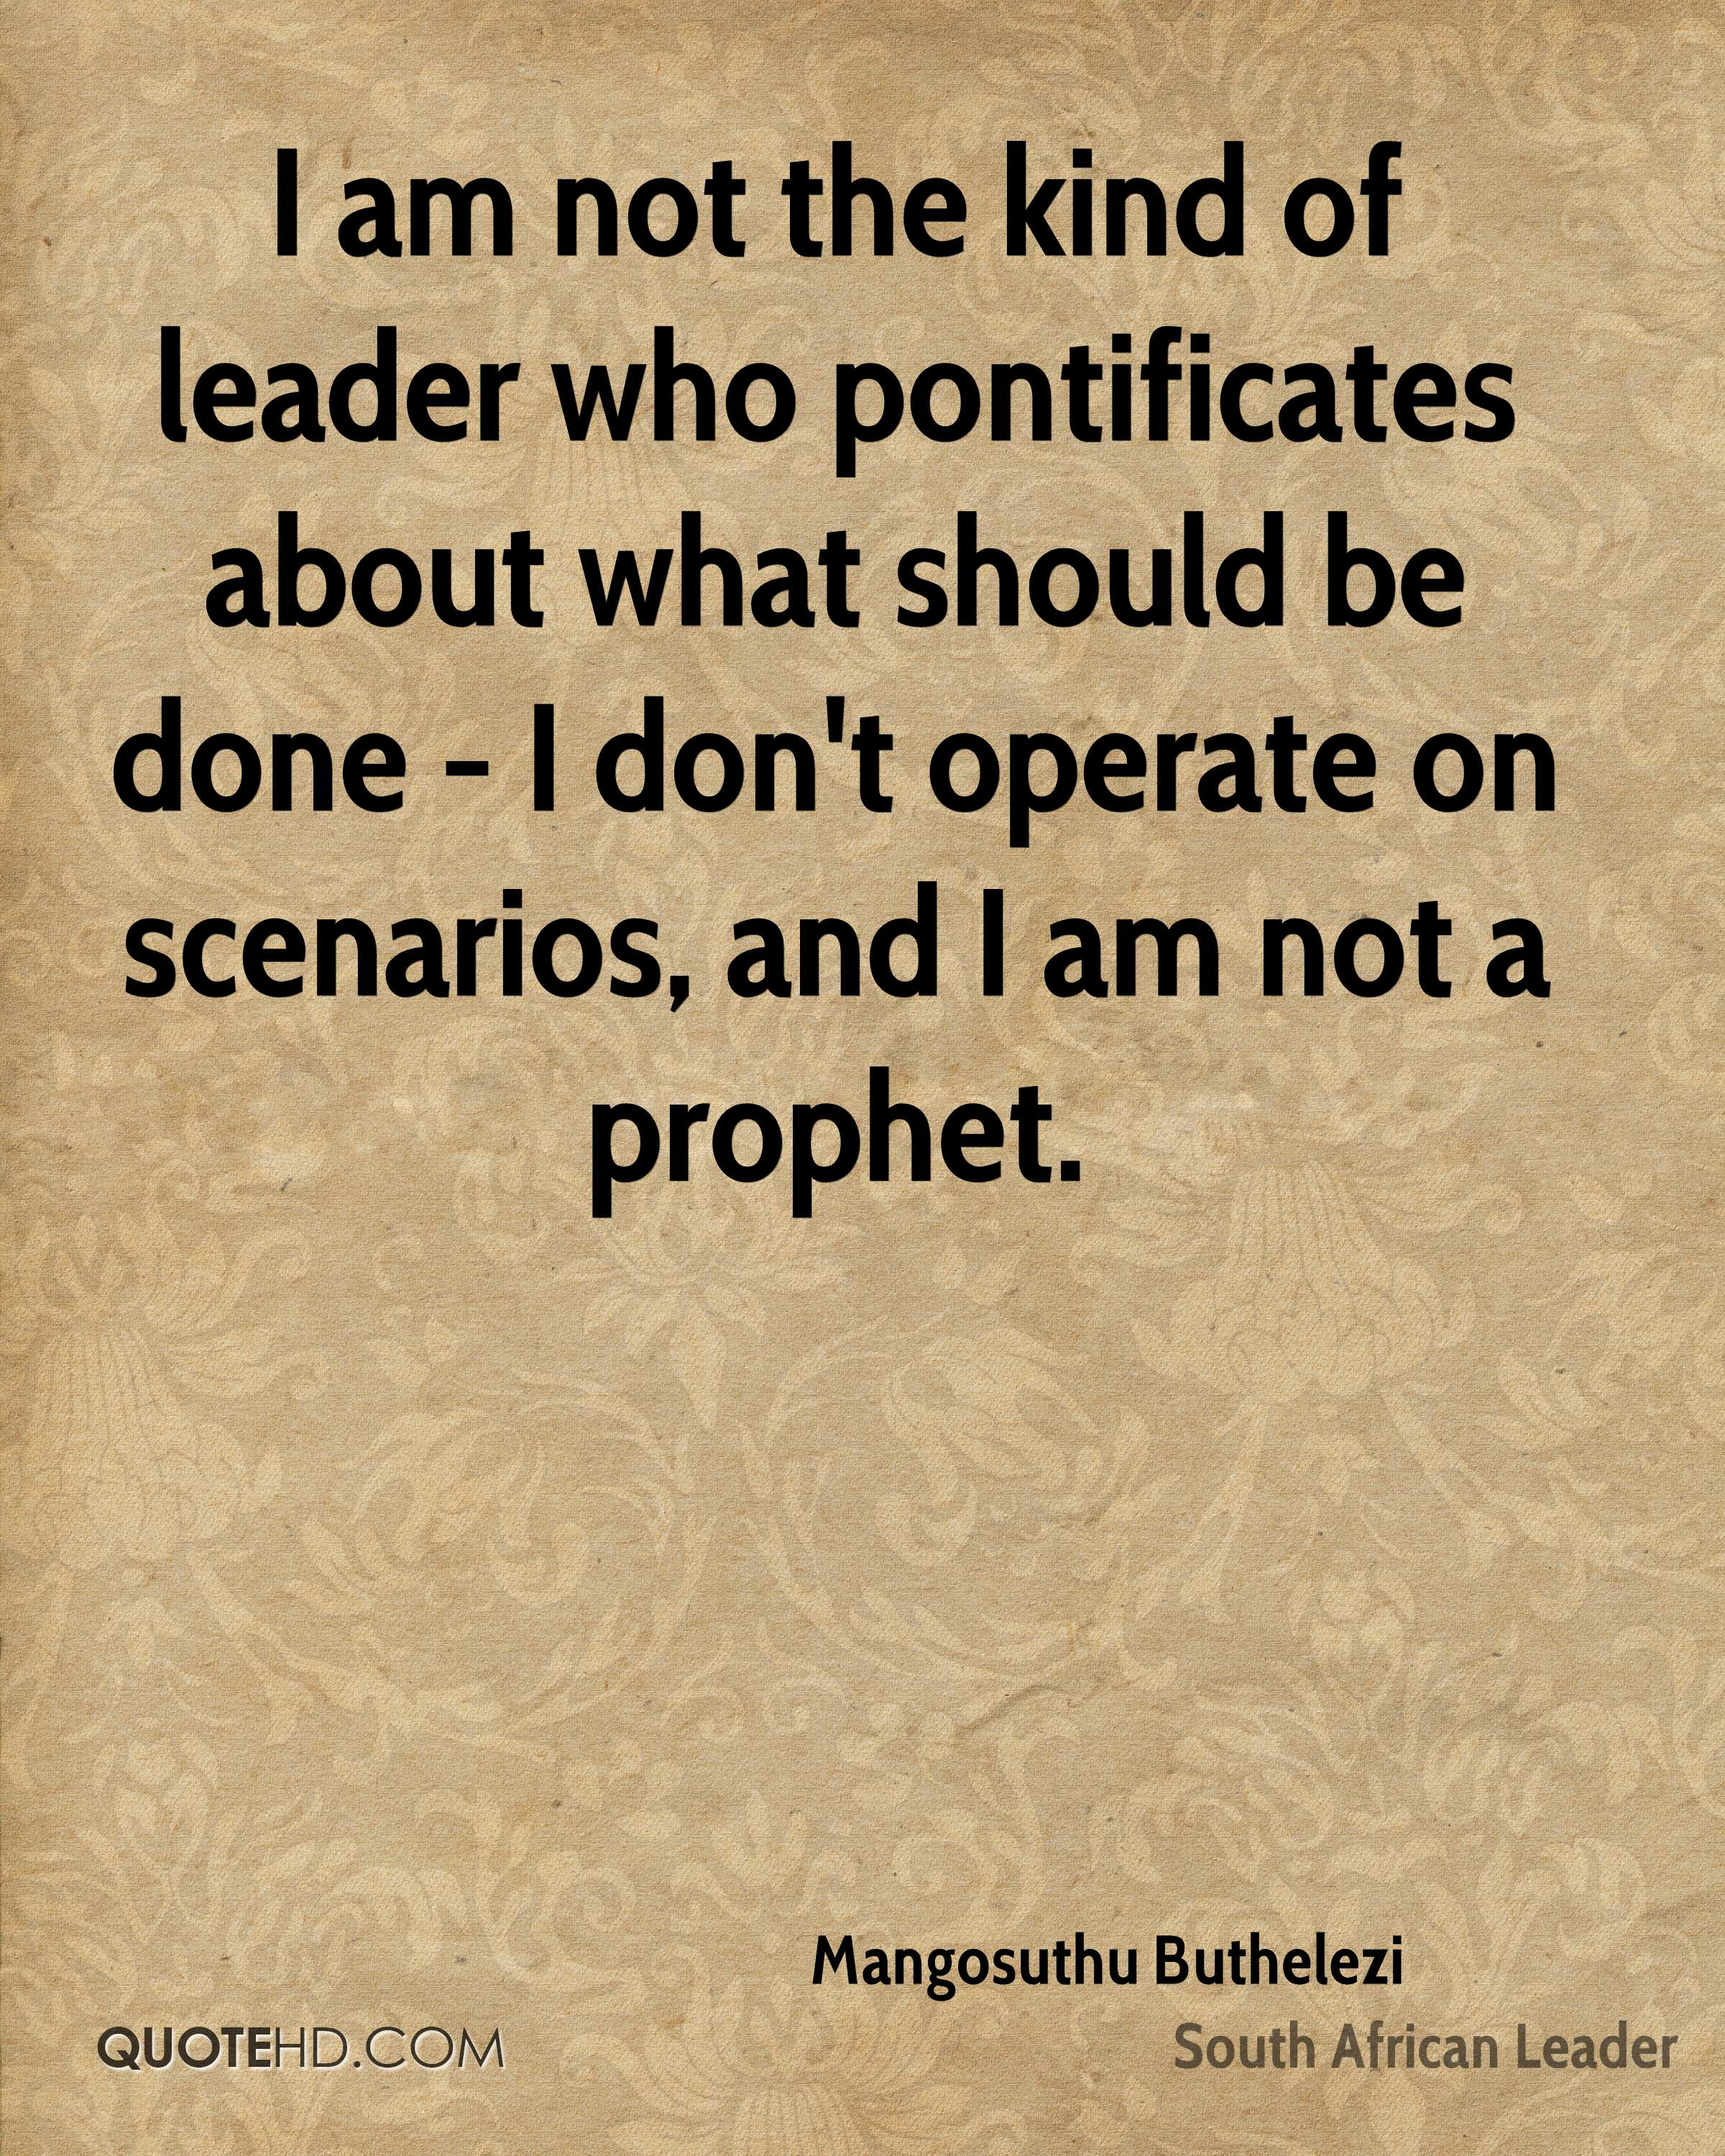 I am not the kind of leader who pontificates about what should be done - I don't operate on scenarios, and I am not a prophet.